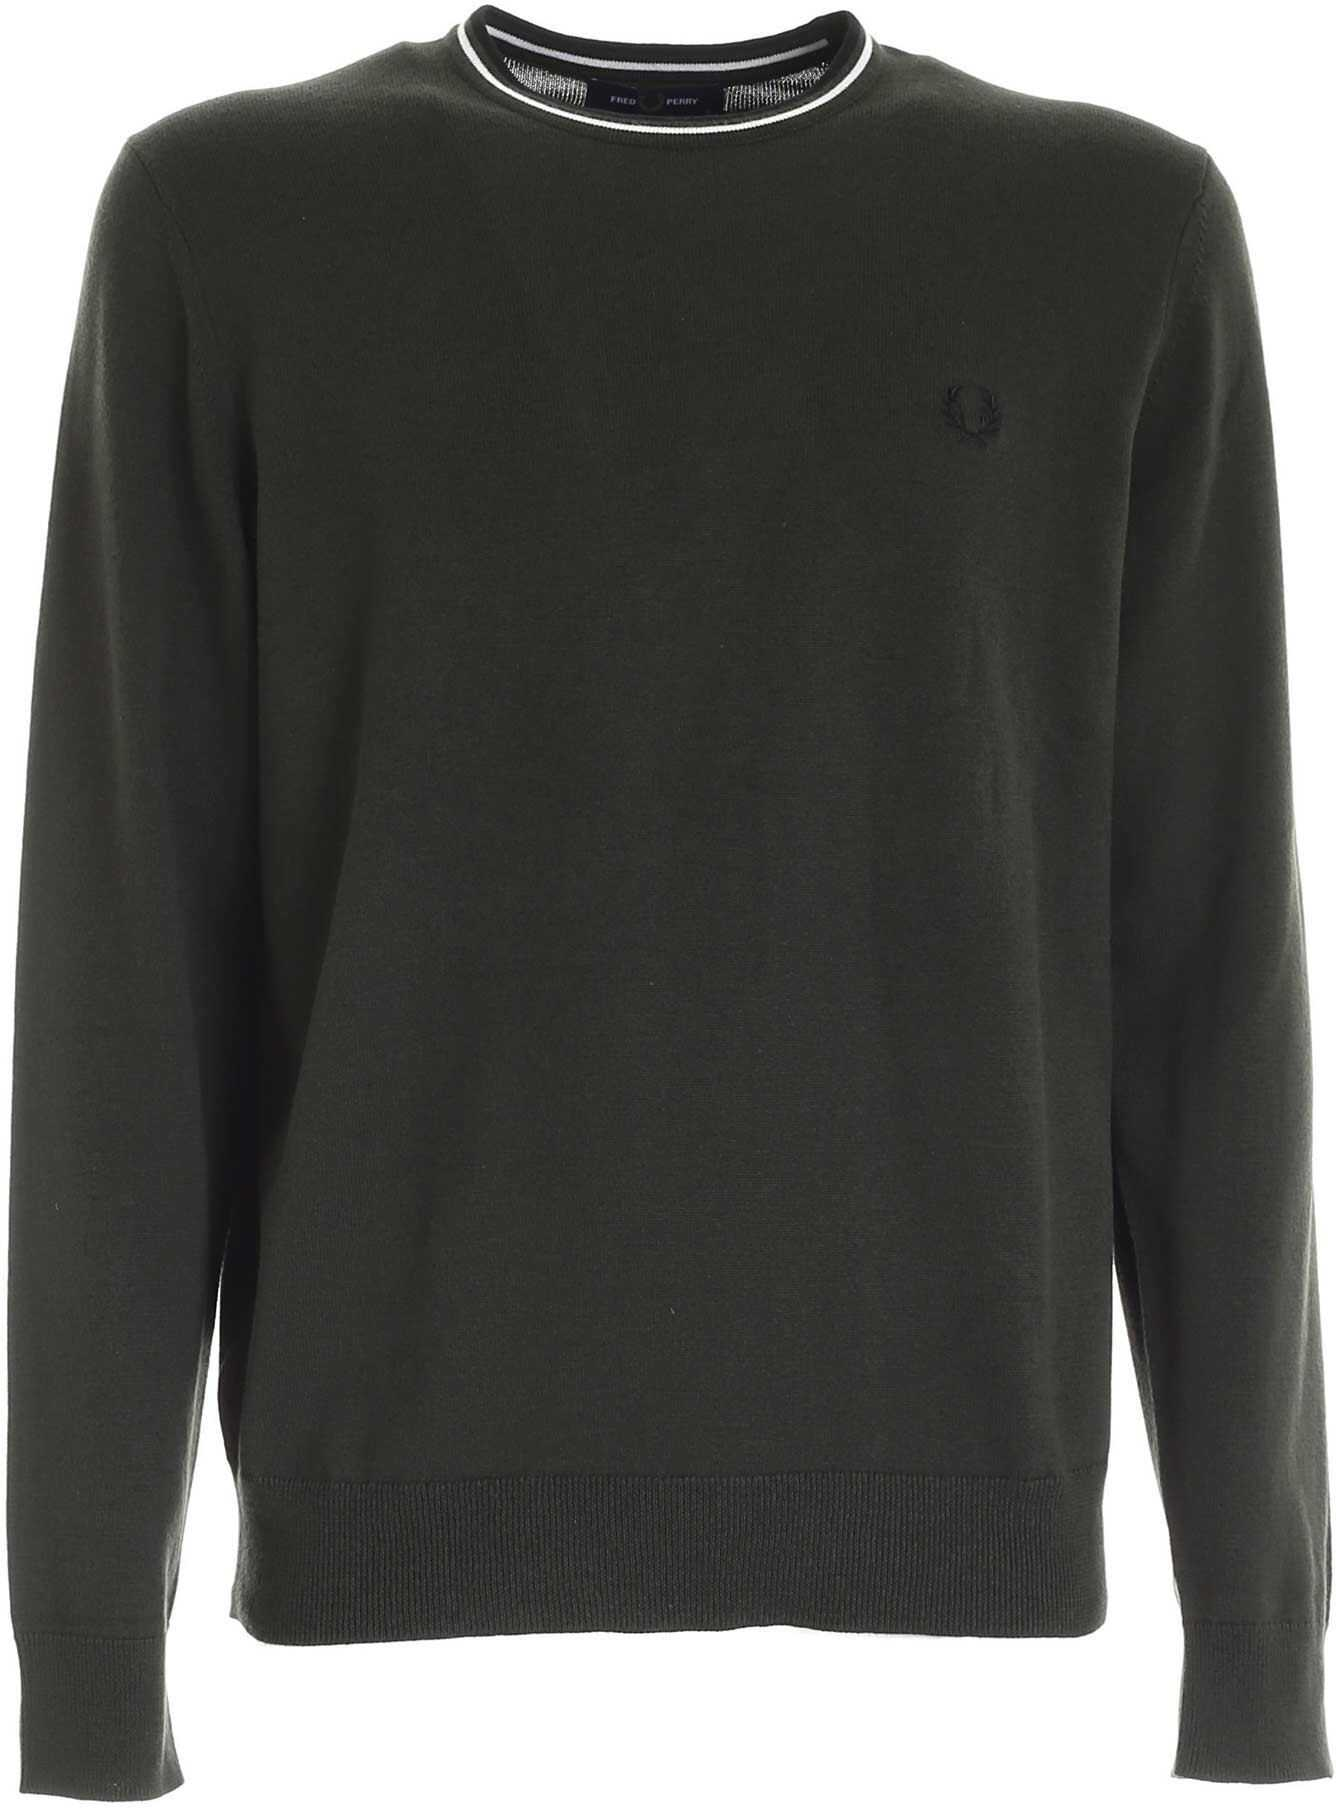 Fred Perry Classic Pullover In Army Green Color Green imagine